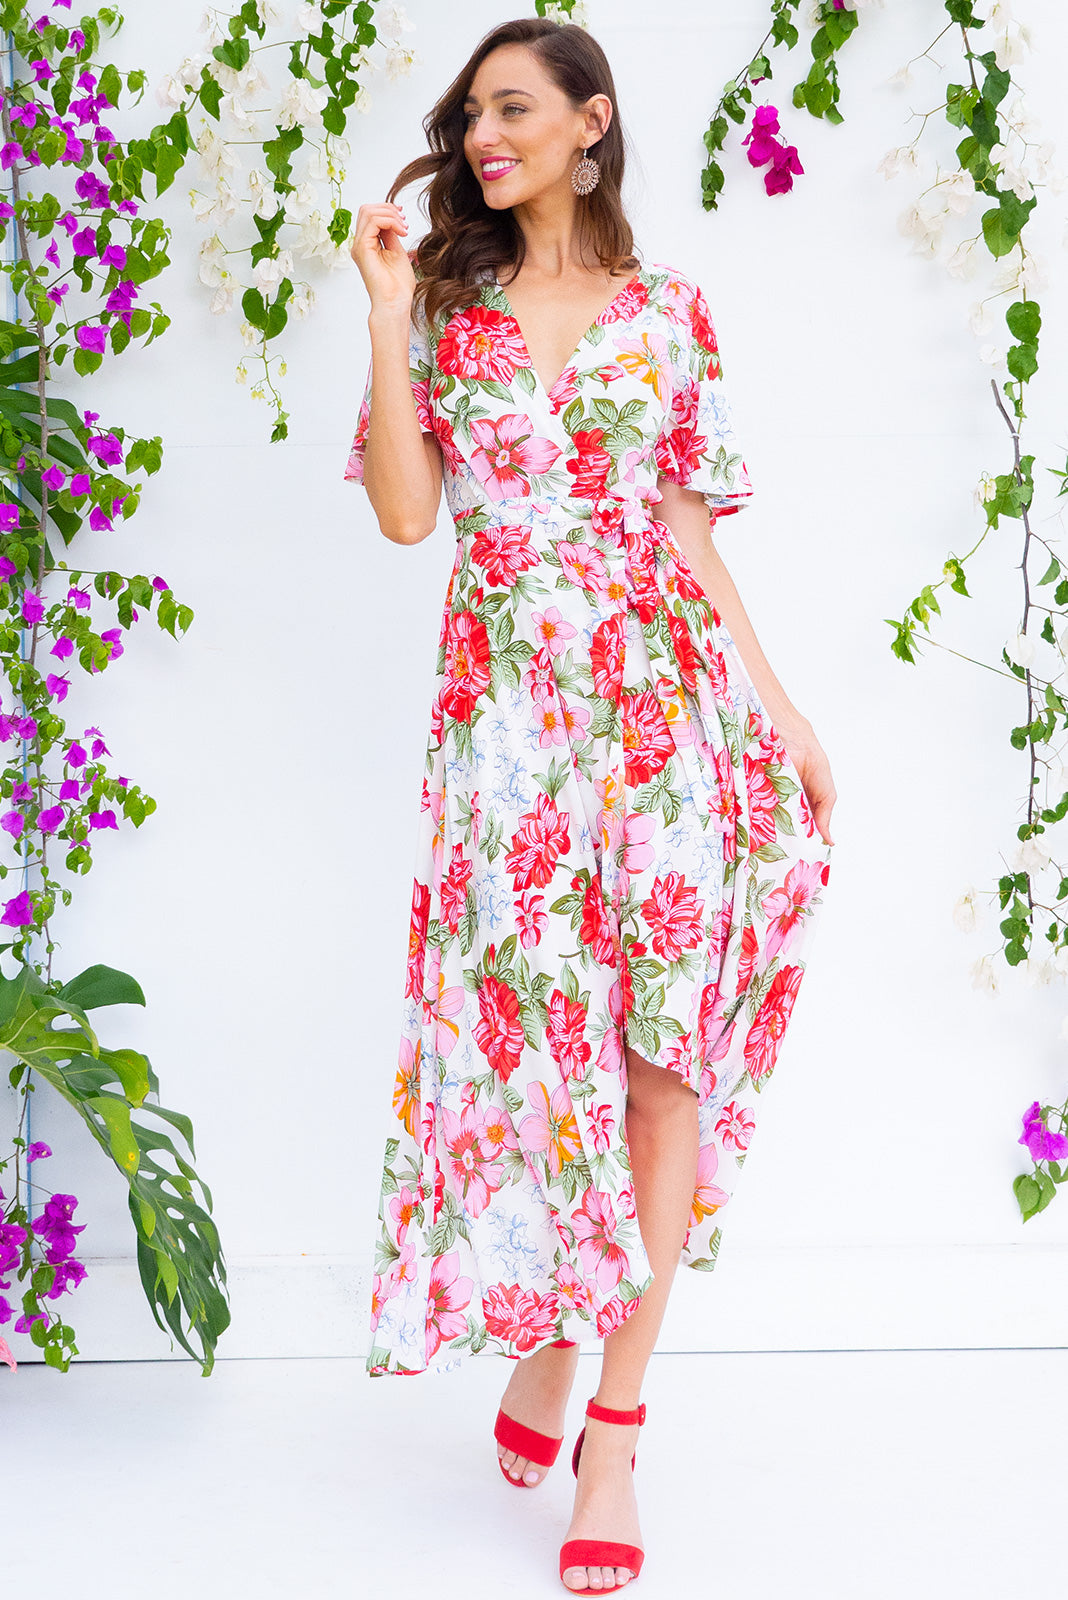 Petal Azalea Pinks Maxi Wrap Dress features a flutter sleeve, adjustable wrap around waist and a dipped hemline in a soft woven 100% rayon fabric with a romantic bohemian floral print in white pink and red